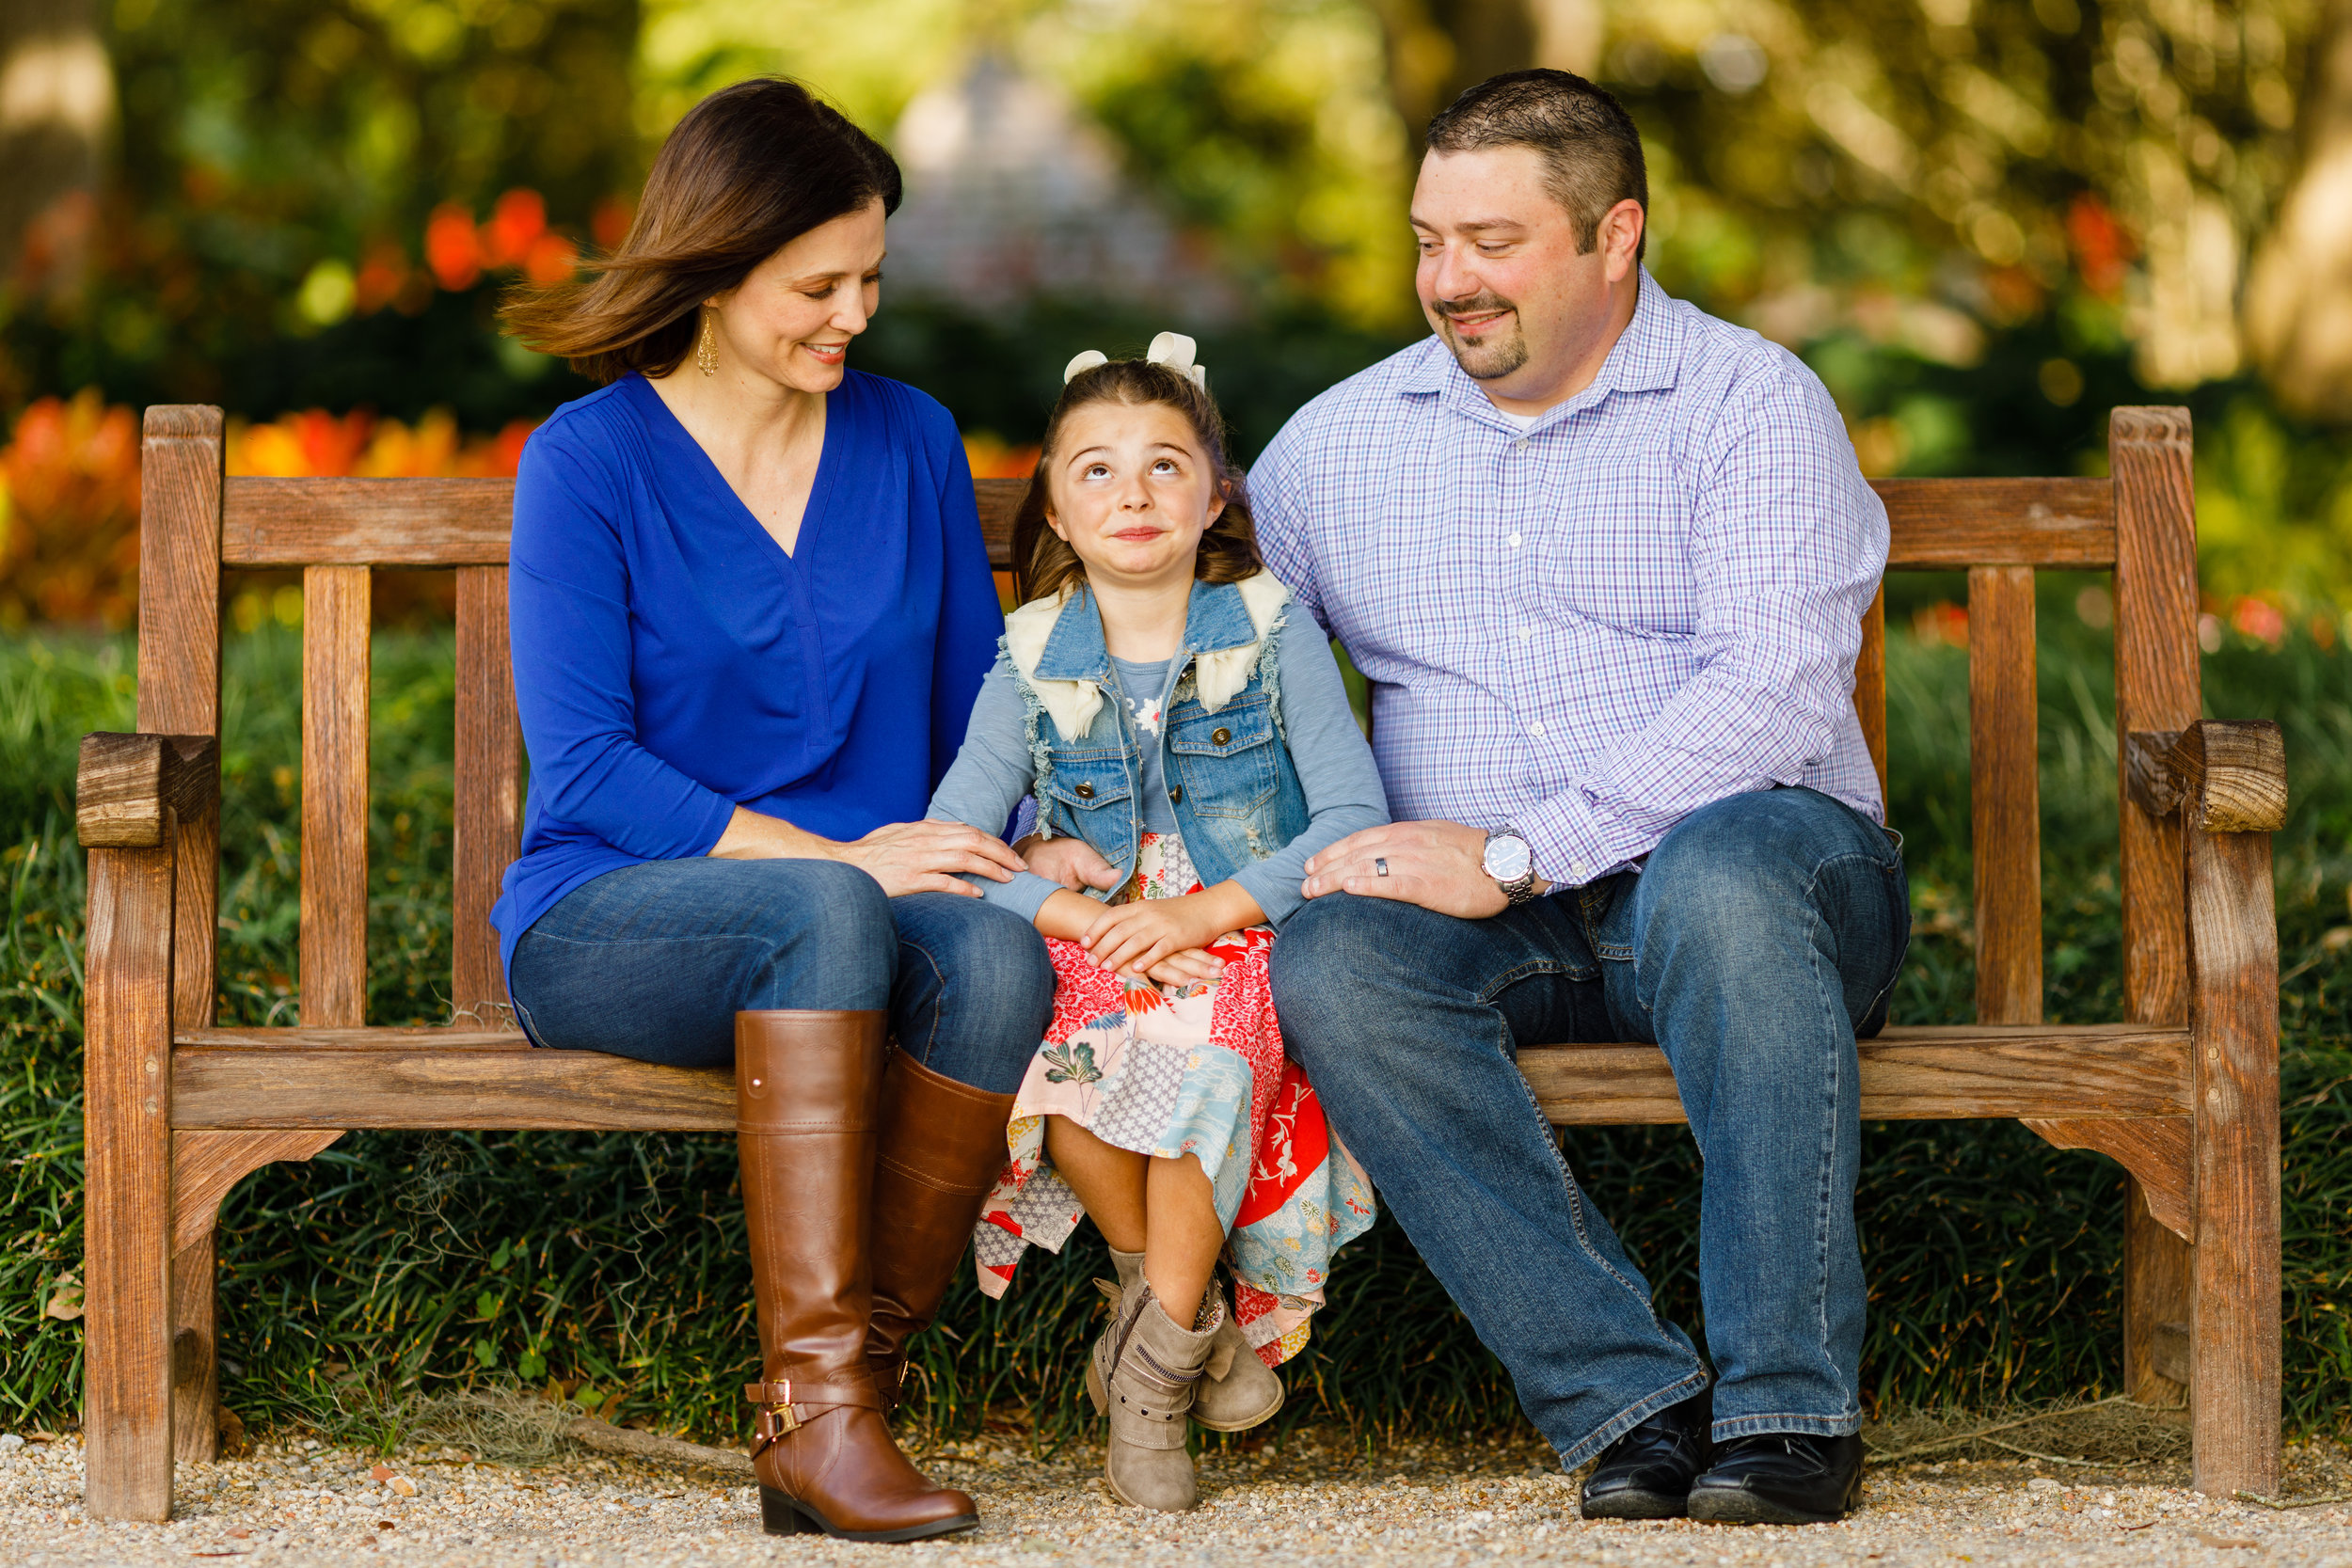 Youngsville-lafayette-portrait-family-wedding-photographer-9386.jpg